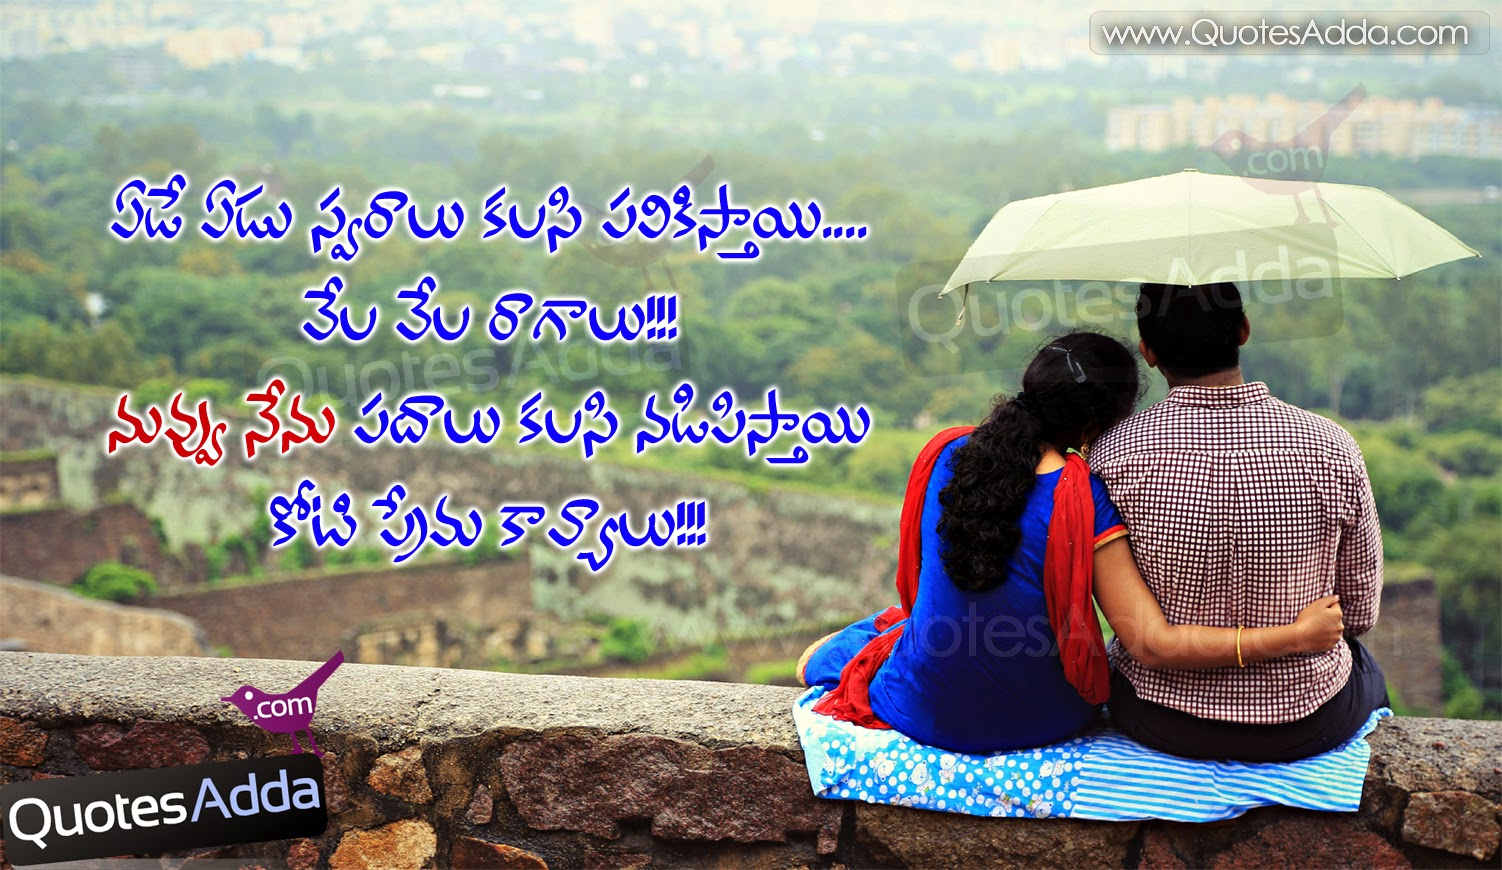 I Love Quotes In Telugu : Latest+New+Telugu+Love+Quotations+-+MAY1+-+QuotesAdda.com.jpg